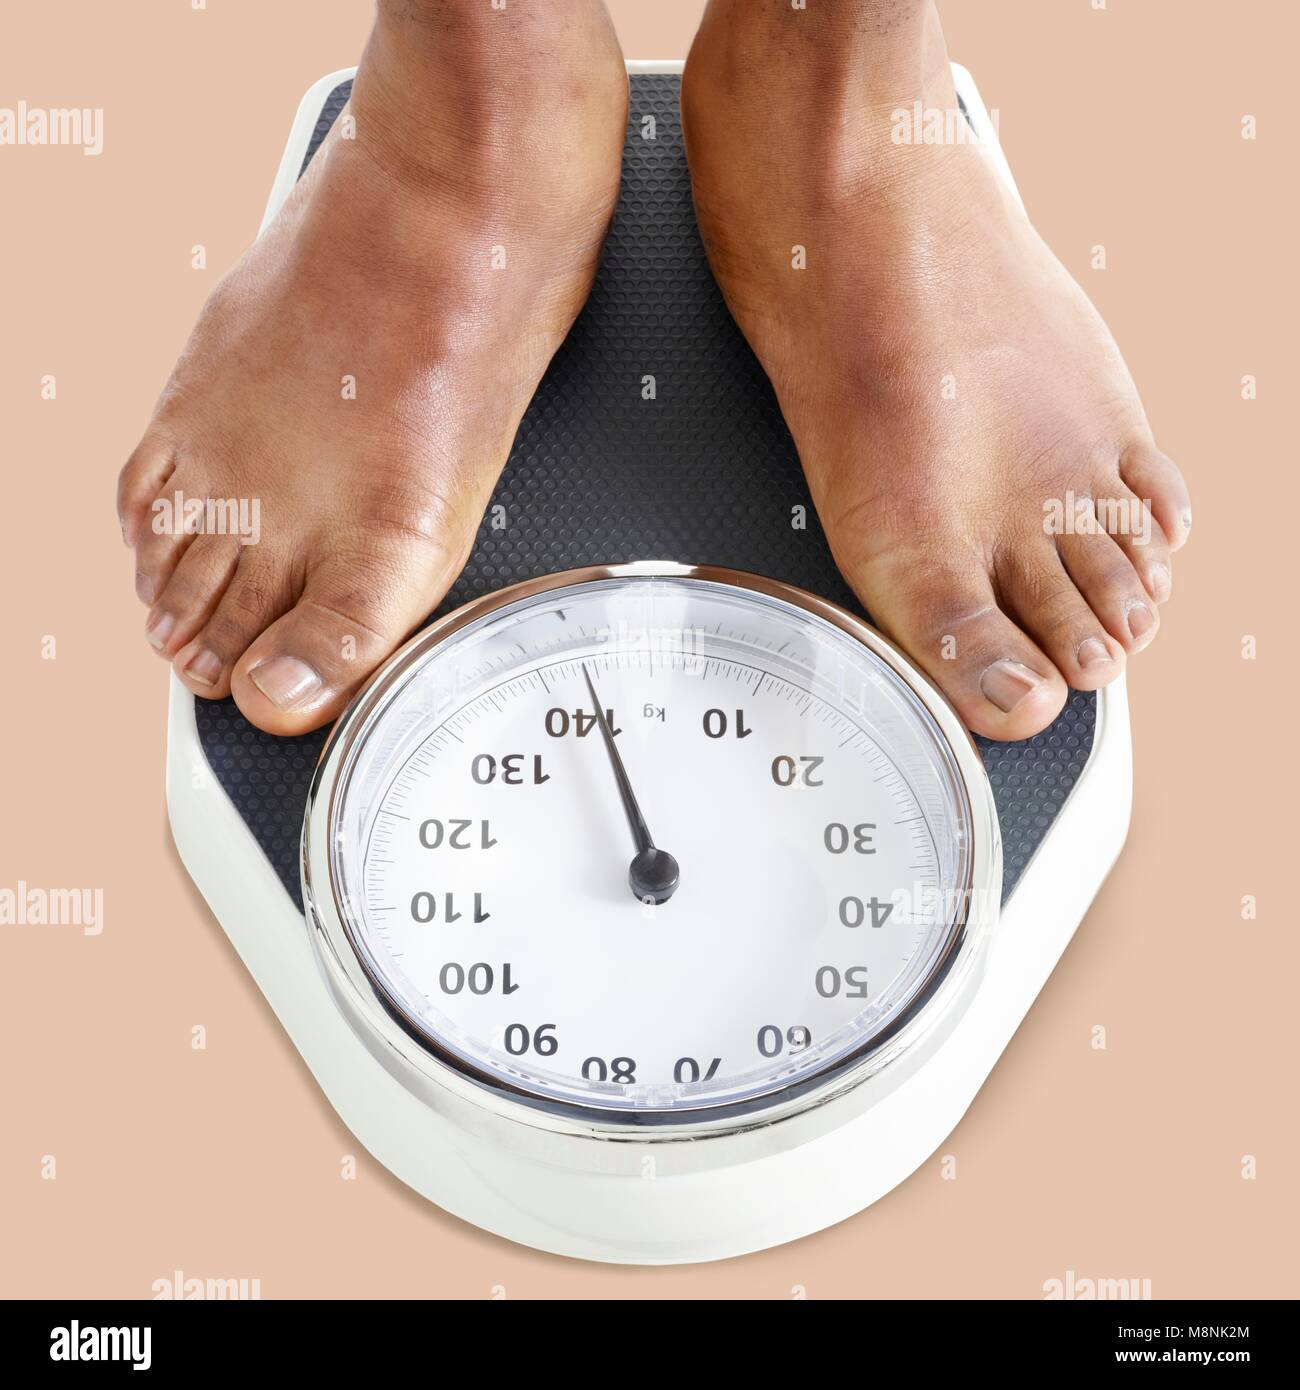 Man standing on weighing scales. - Stock Image